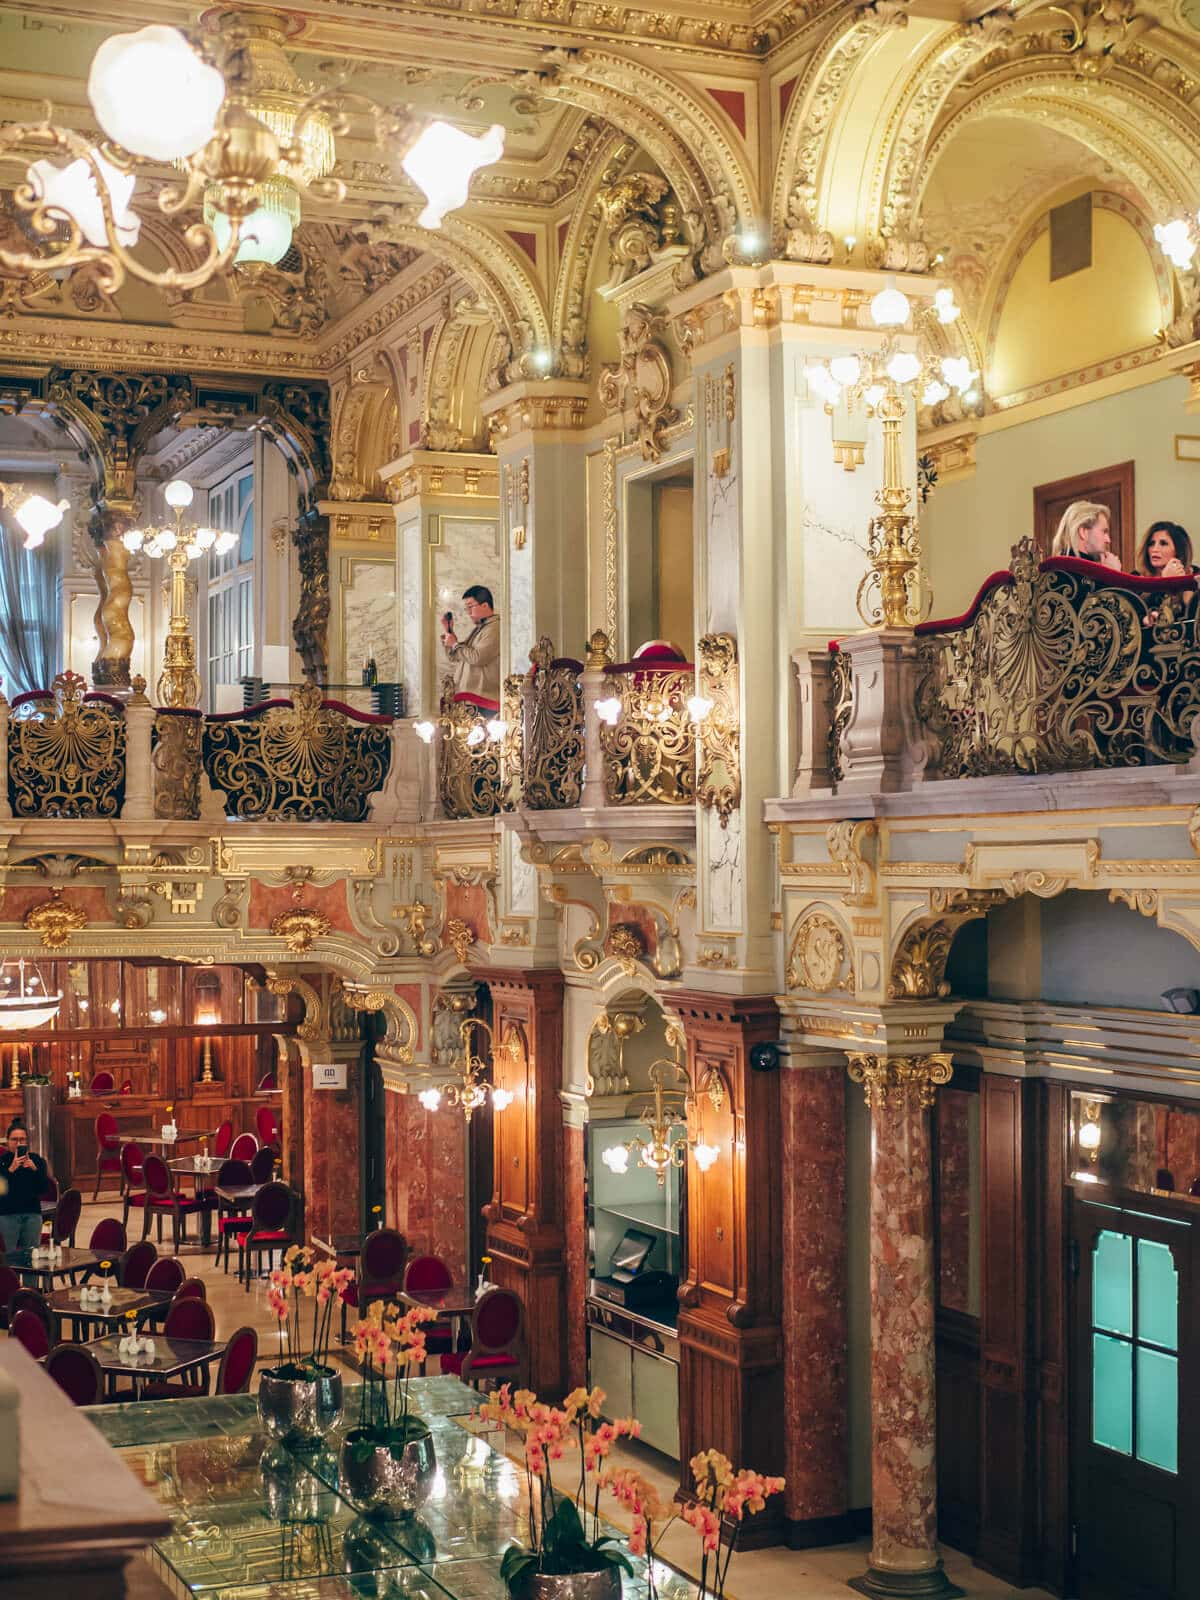 Budapest Instagrammable Places - New York Cafe